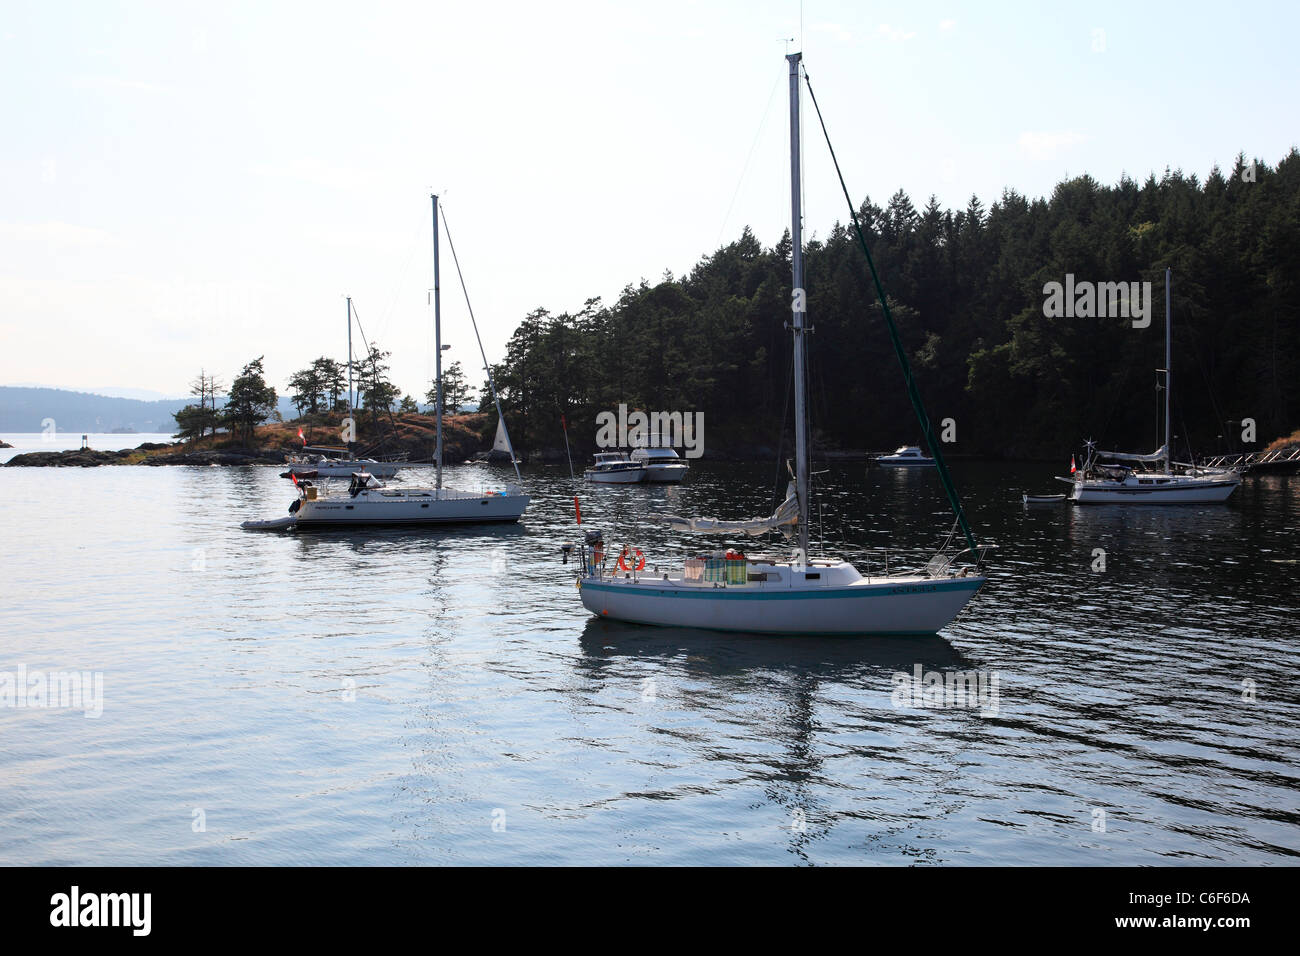 Sailboats anchored in front of Portland Island. - Stock Image